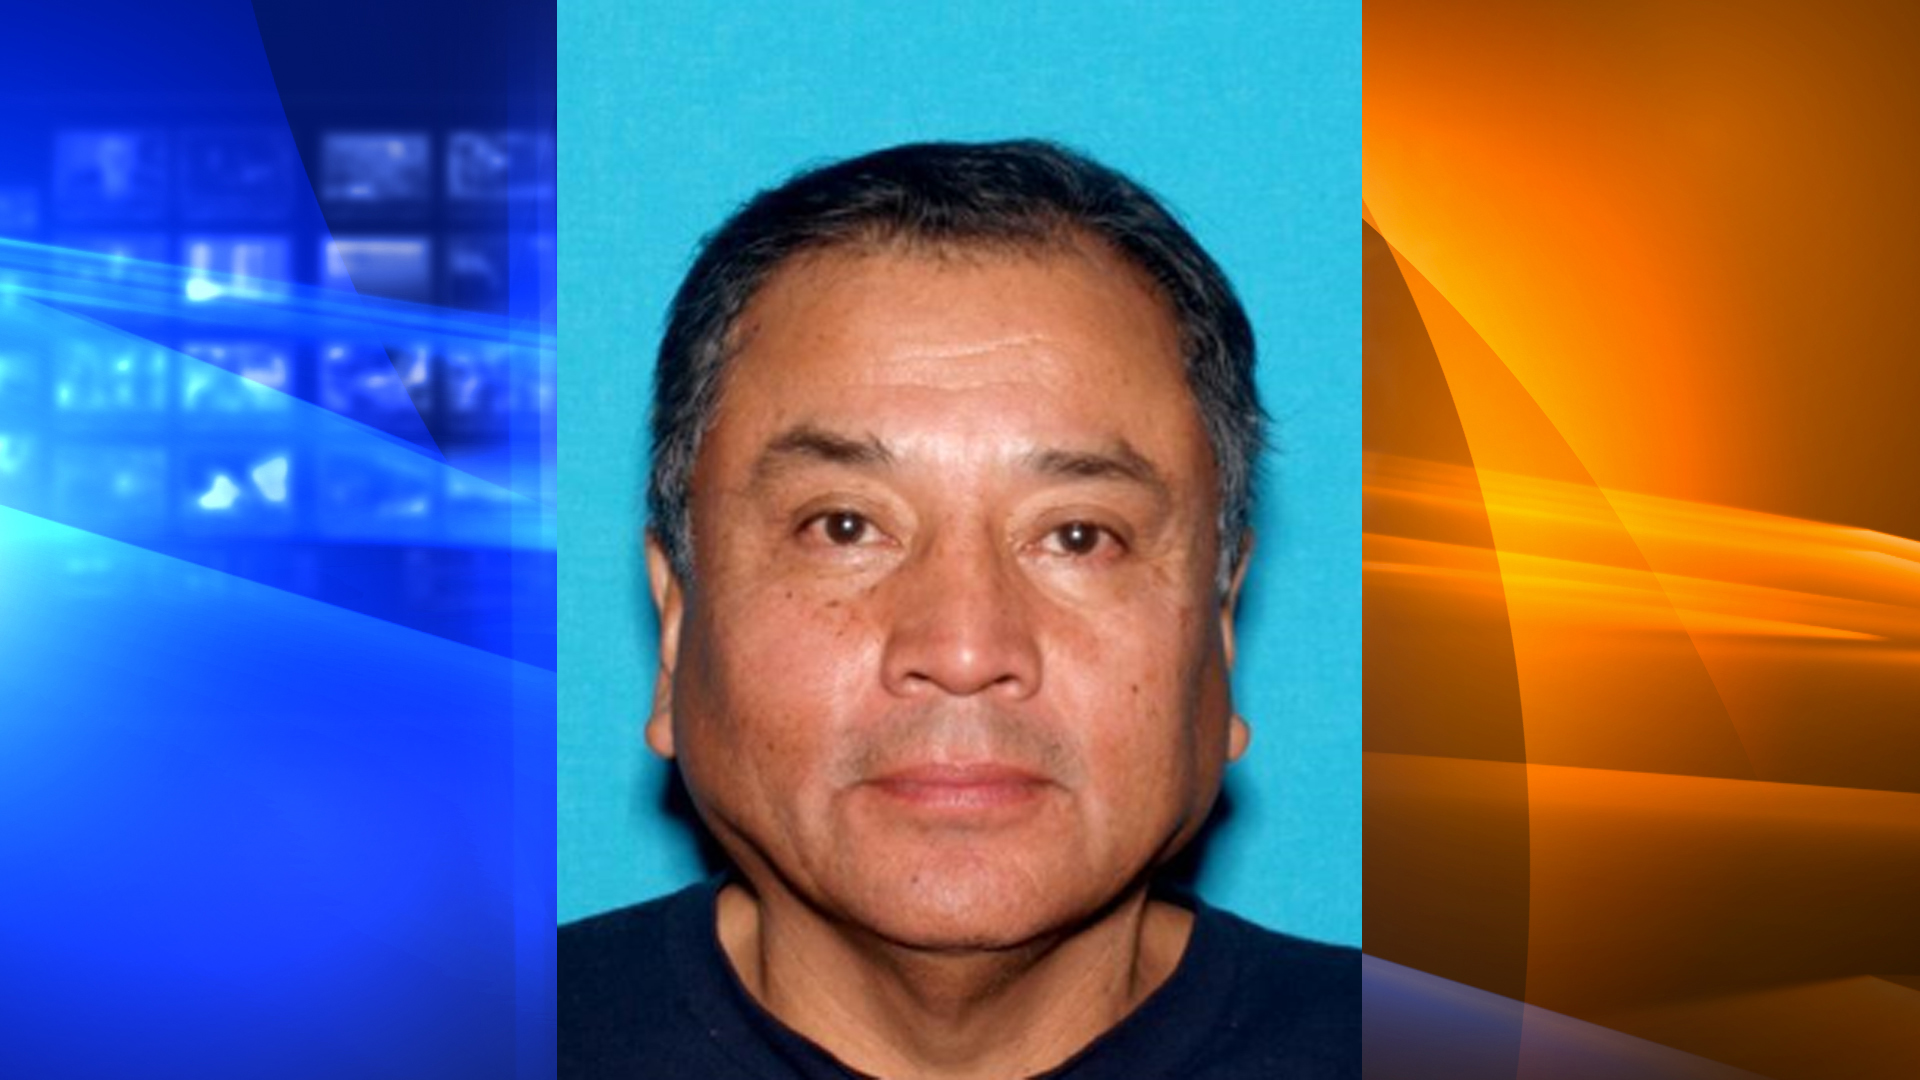 Benjamin Christino Ramirez, 69, of Carson, pictured in a photo released by the Los Angeles County Sheriff's Department on Oct. 6, 2018.